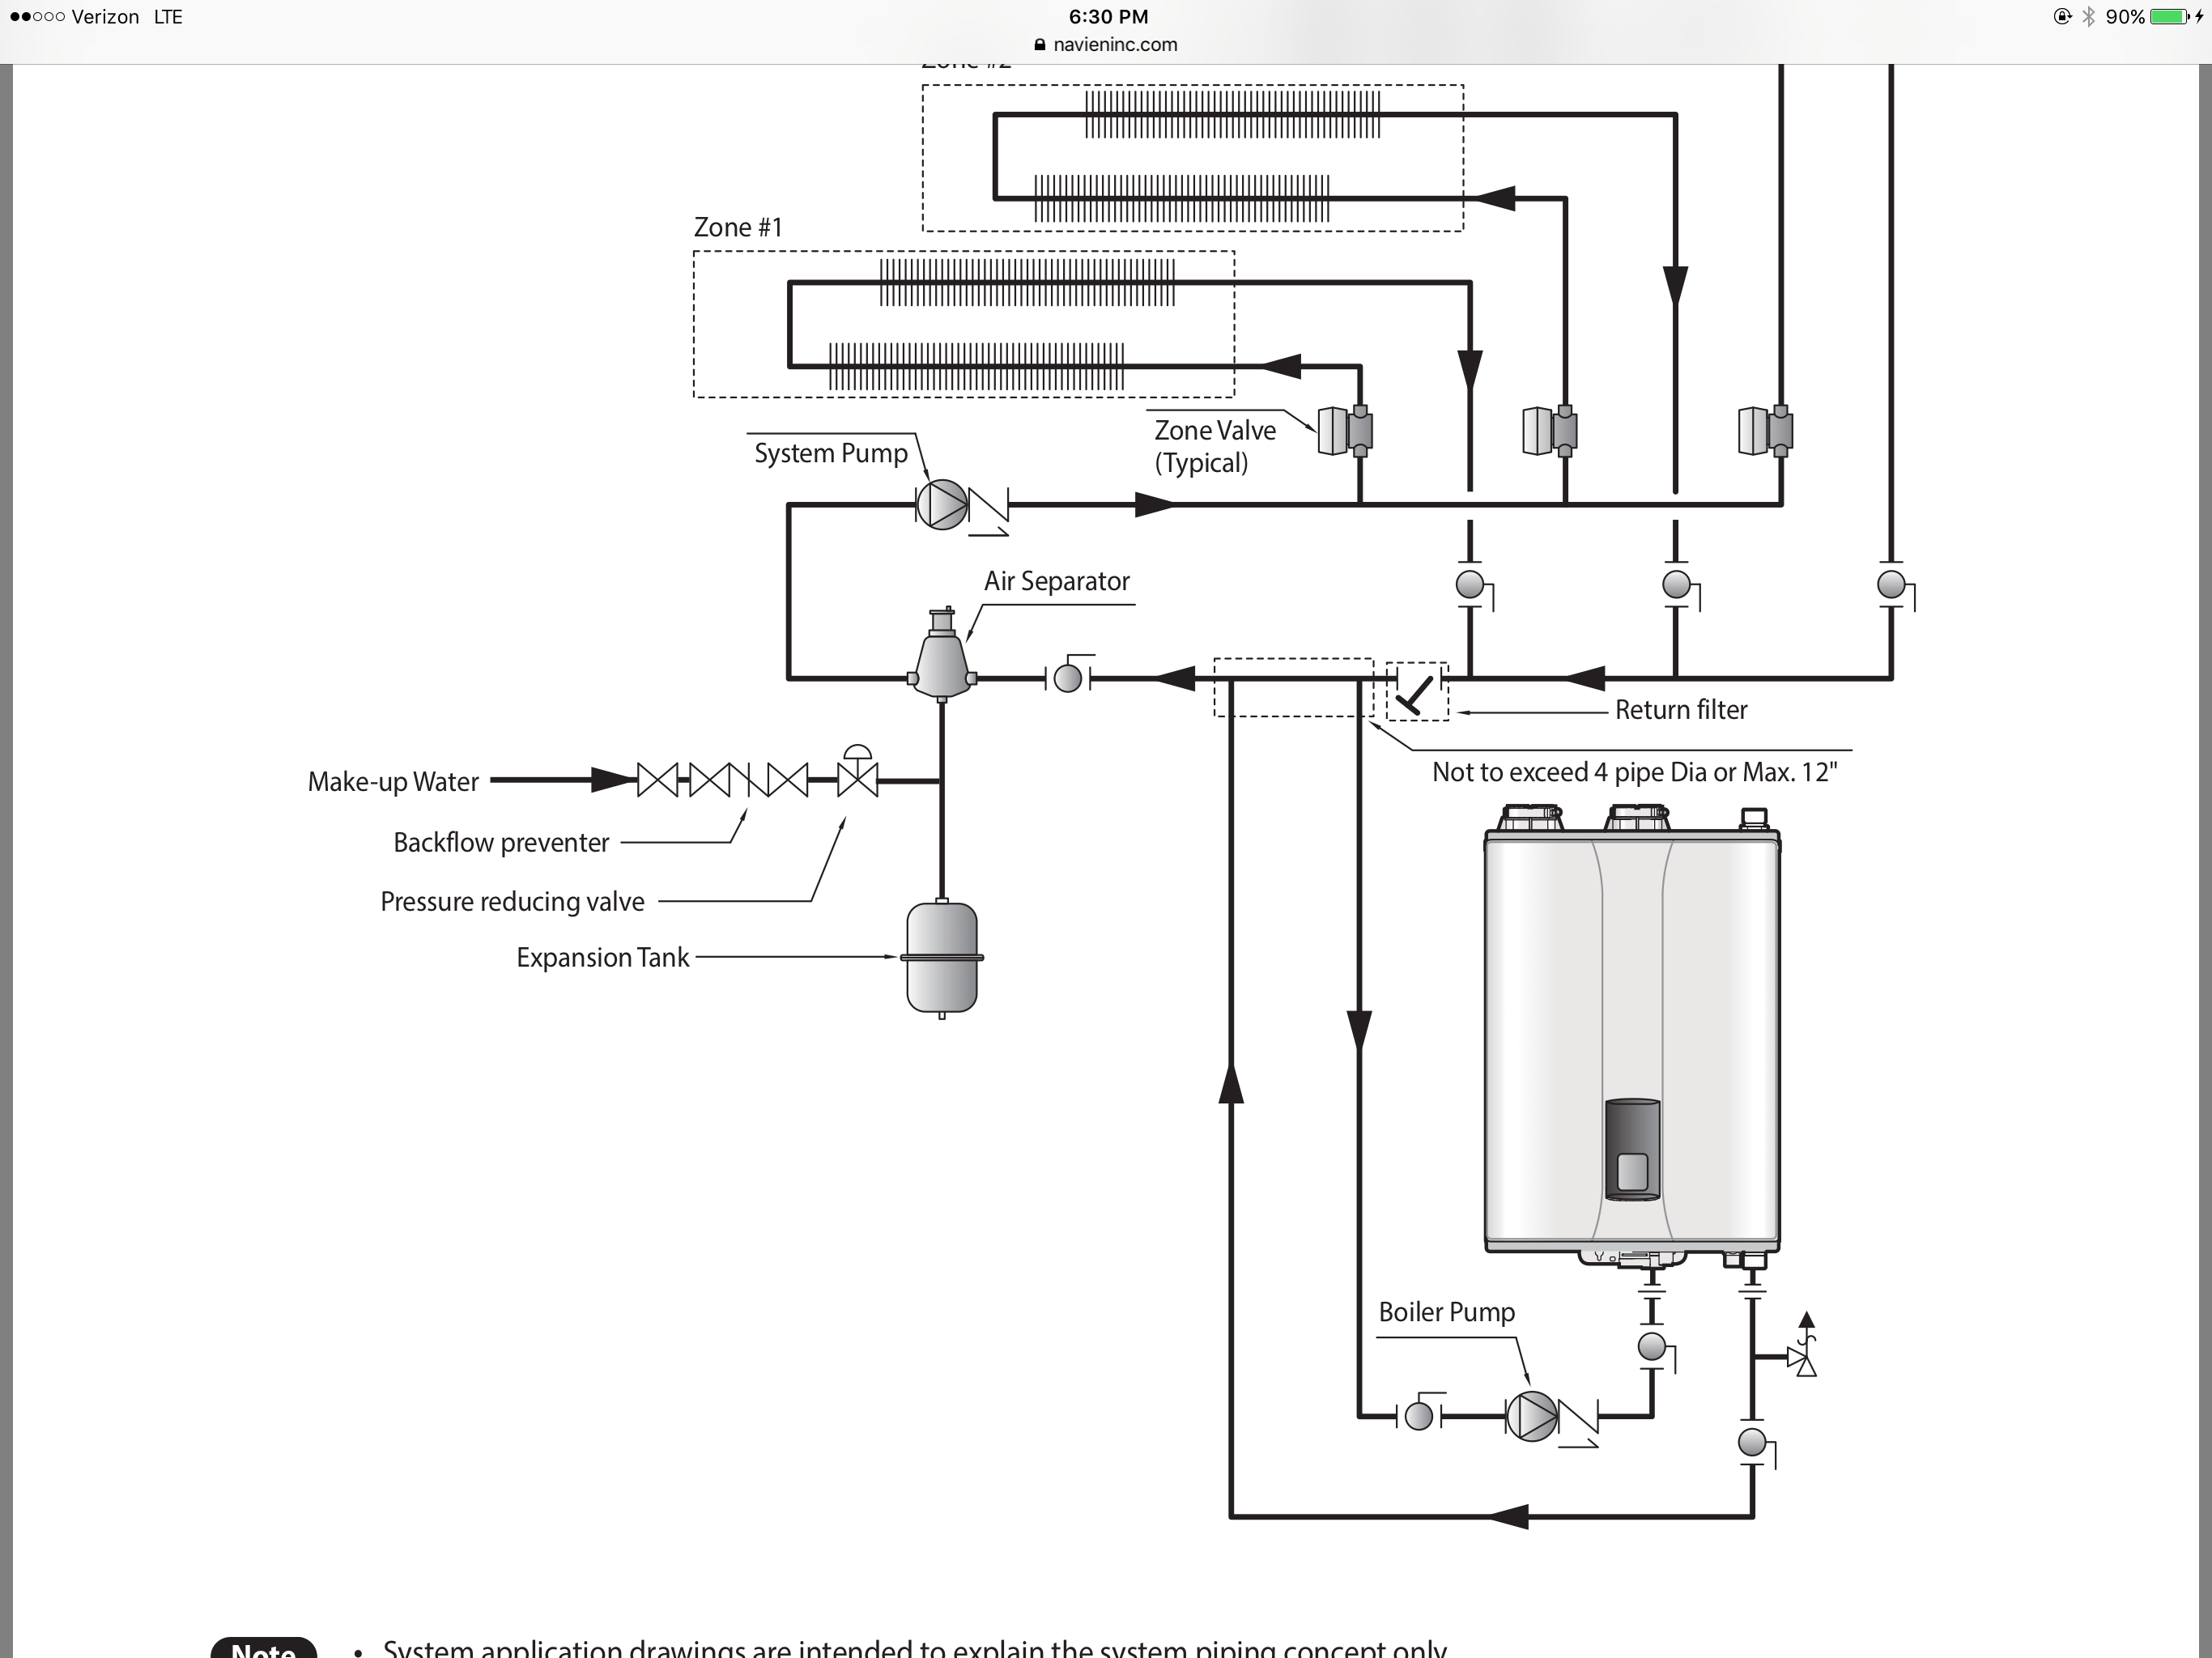 [Download 29+] Navien Nhb Boiler Piping Diagram